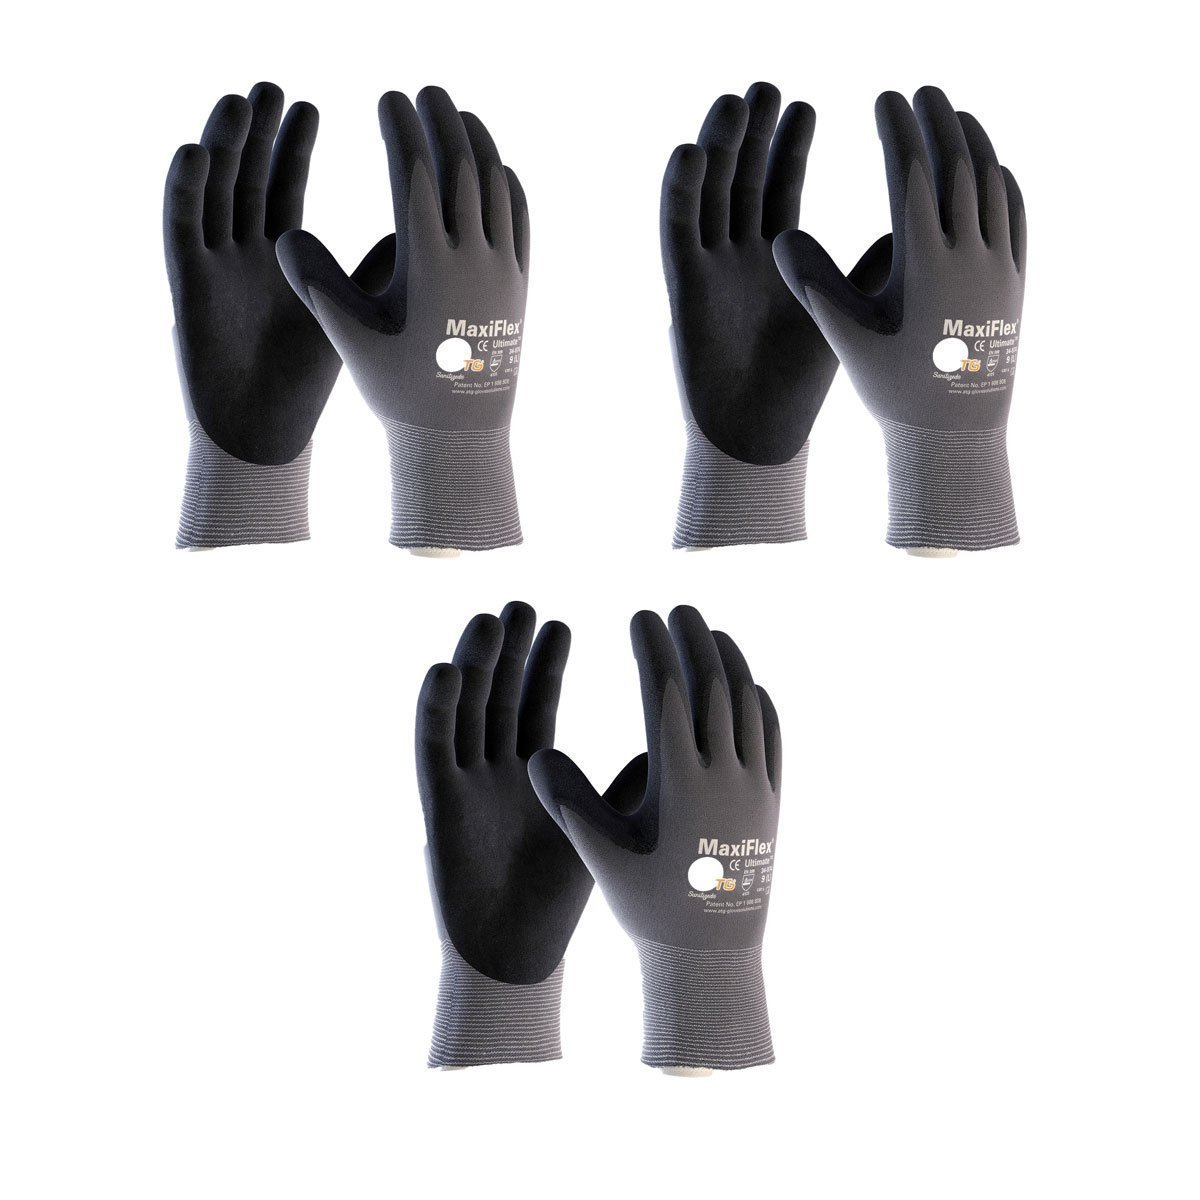 Maxiflex 34-874 Ultimate Nitrile Grip Work Gloves 3 Pair Large